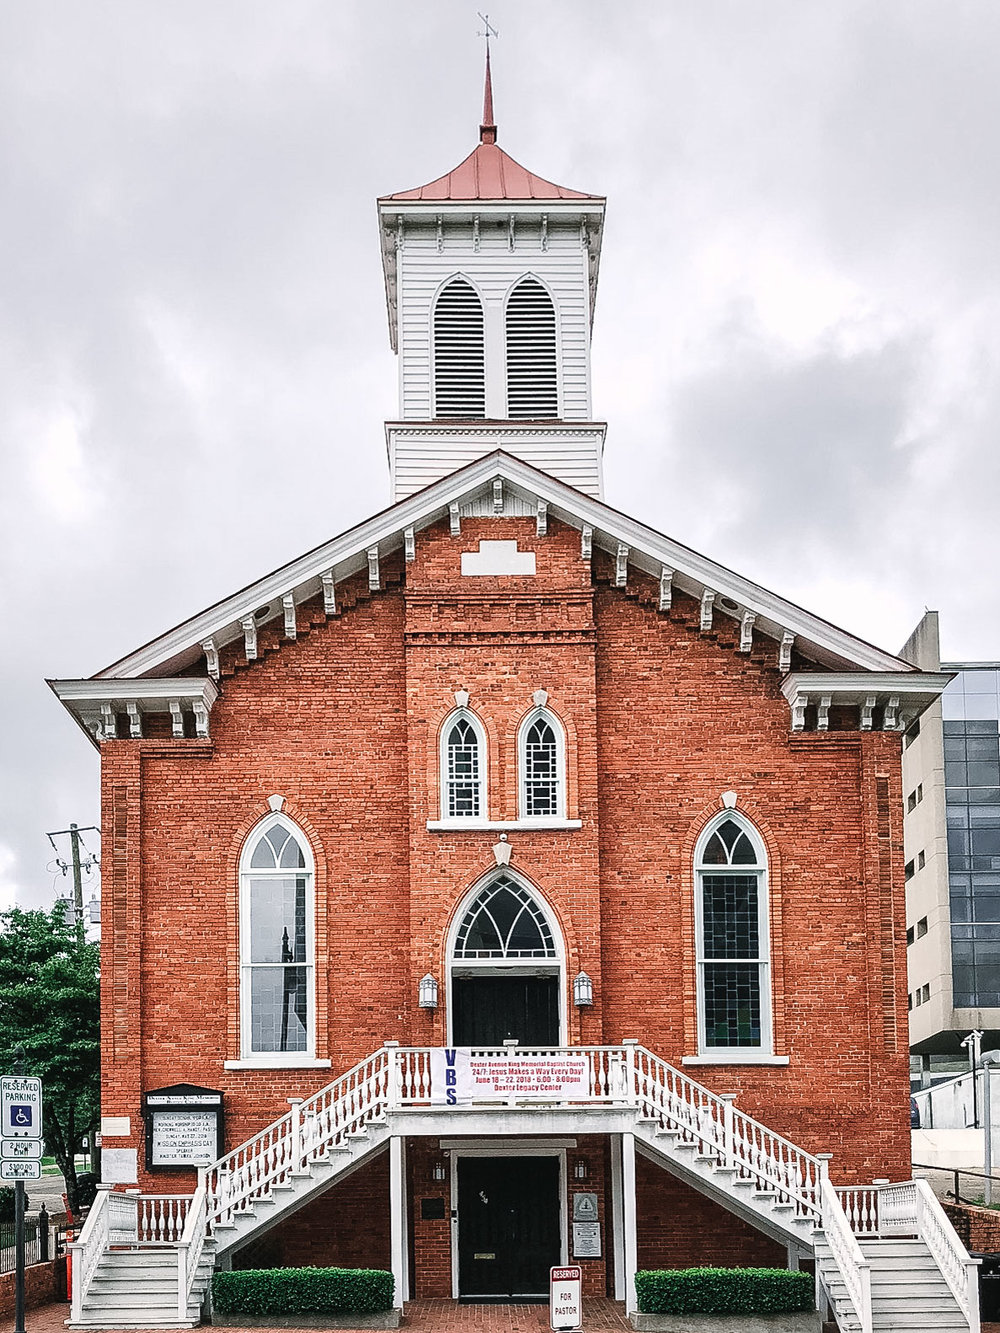 The Dexter Avenue Baptist Church, where Dr. Martin Luther King was a paster during the late 50's. It is one of the first African American churches in the country and was a key meeting location during the Civil Rights movement.